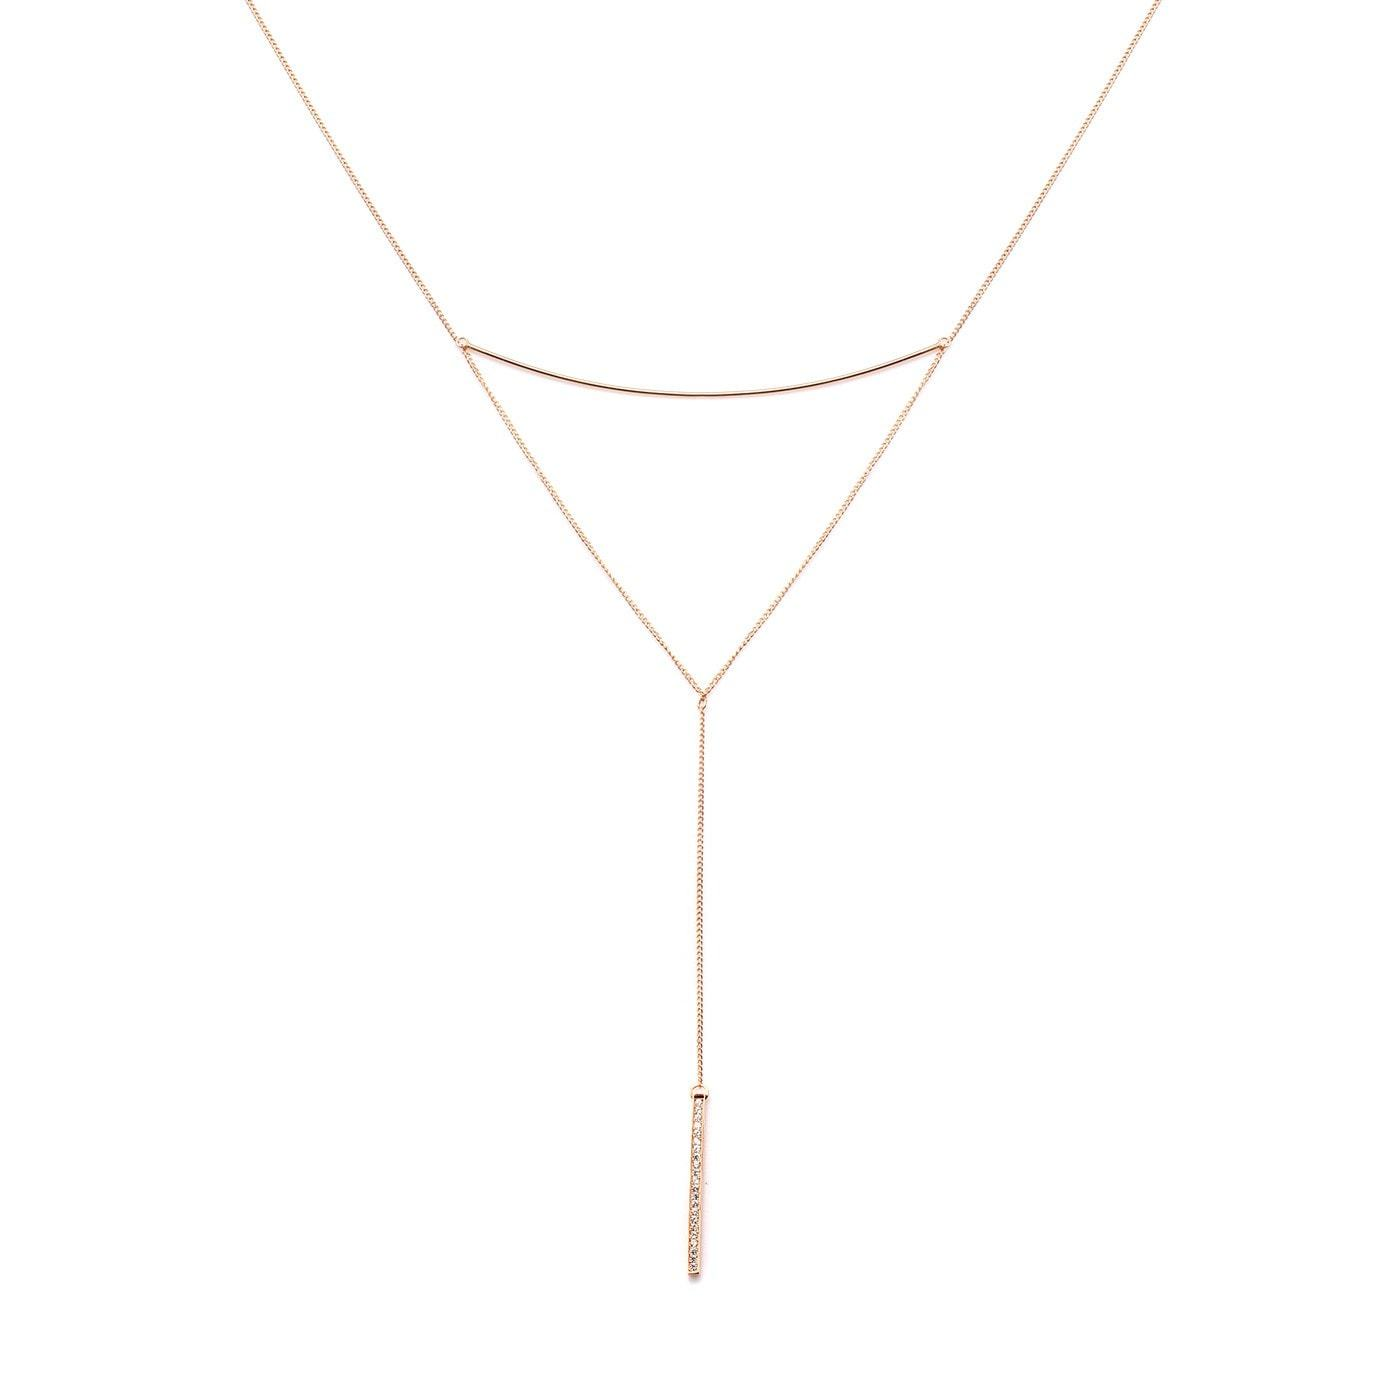 Luxe Sleek Bars Layered Necklace-Blinglane